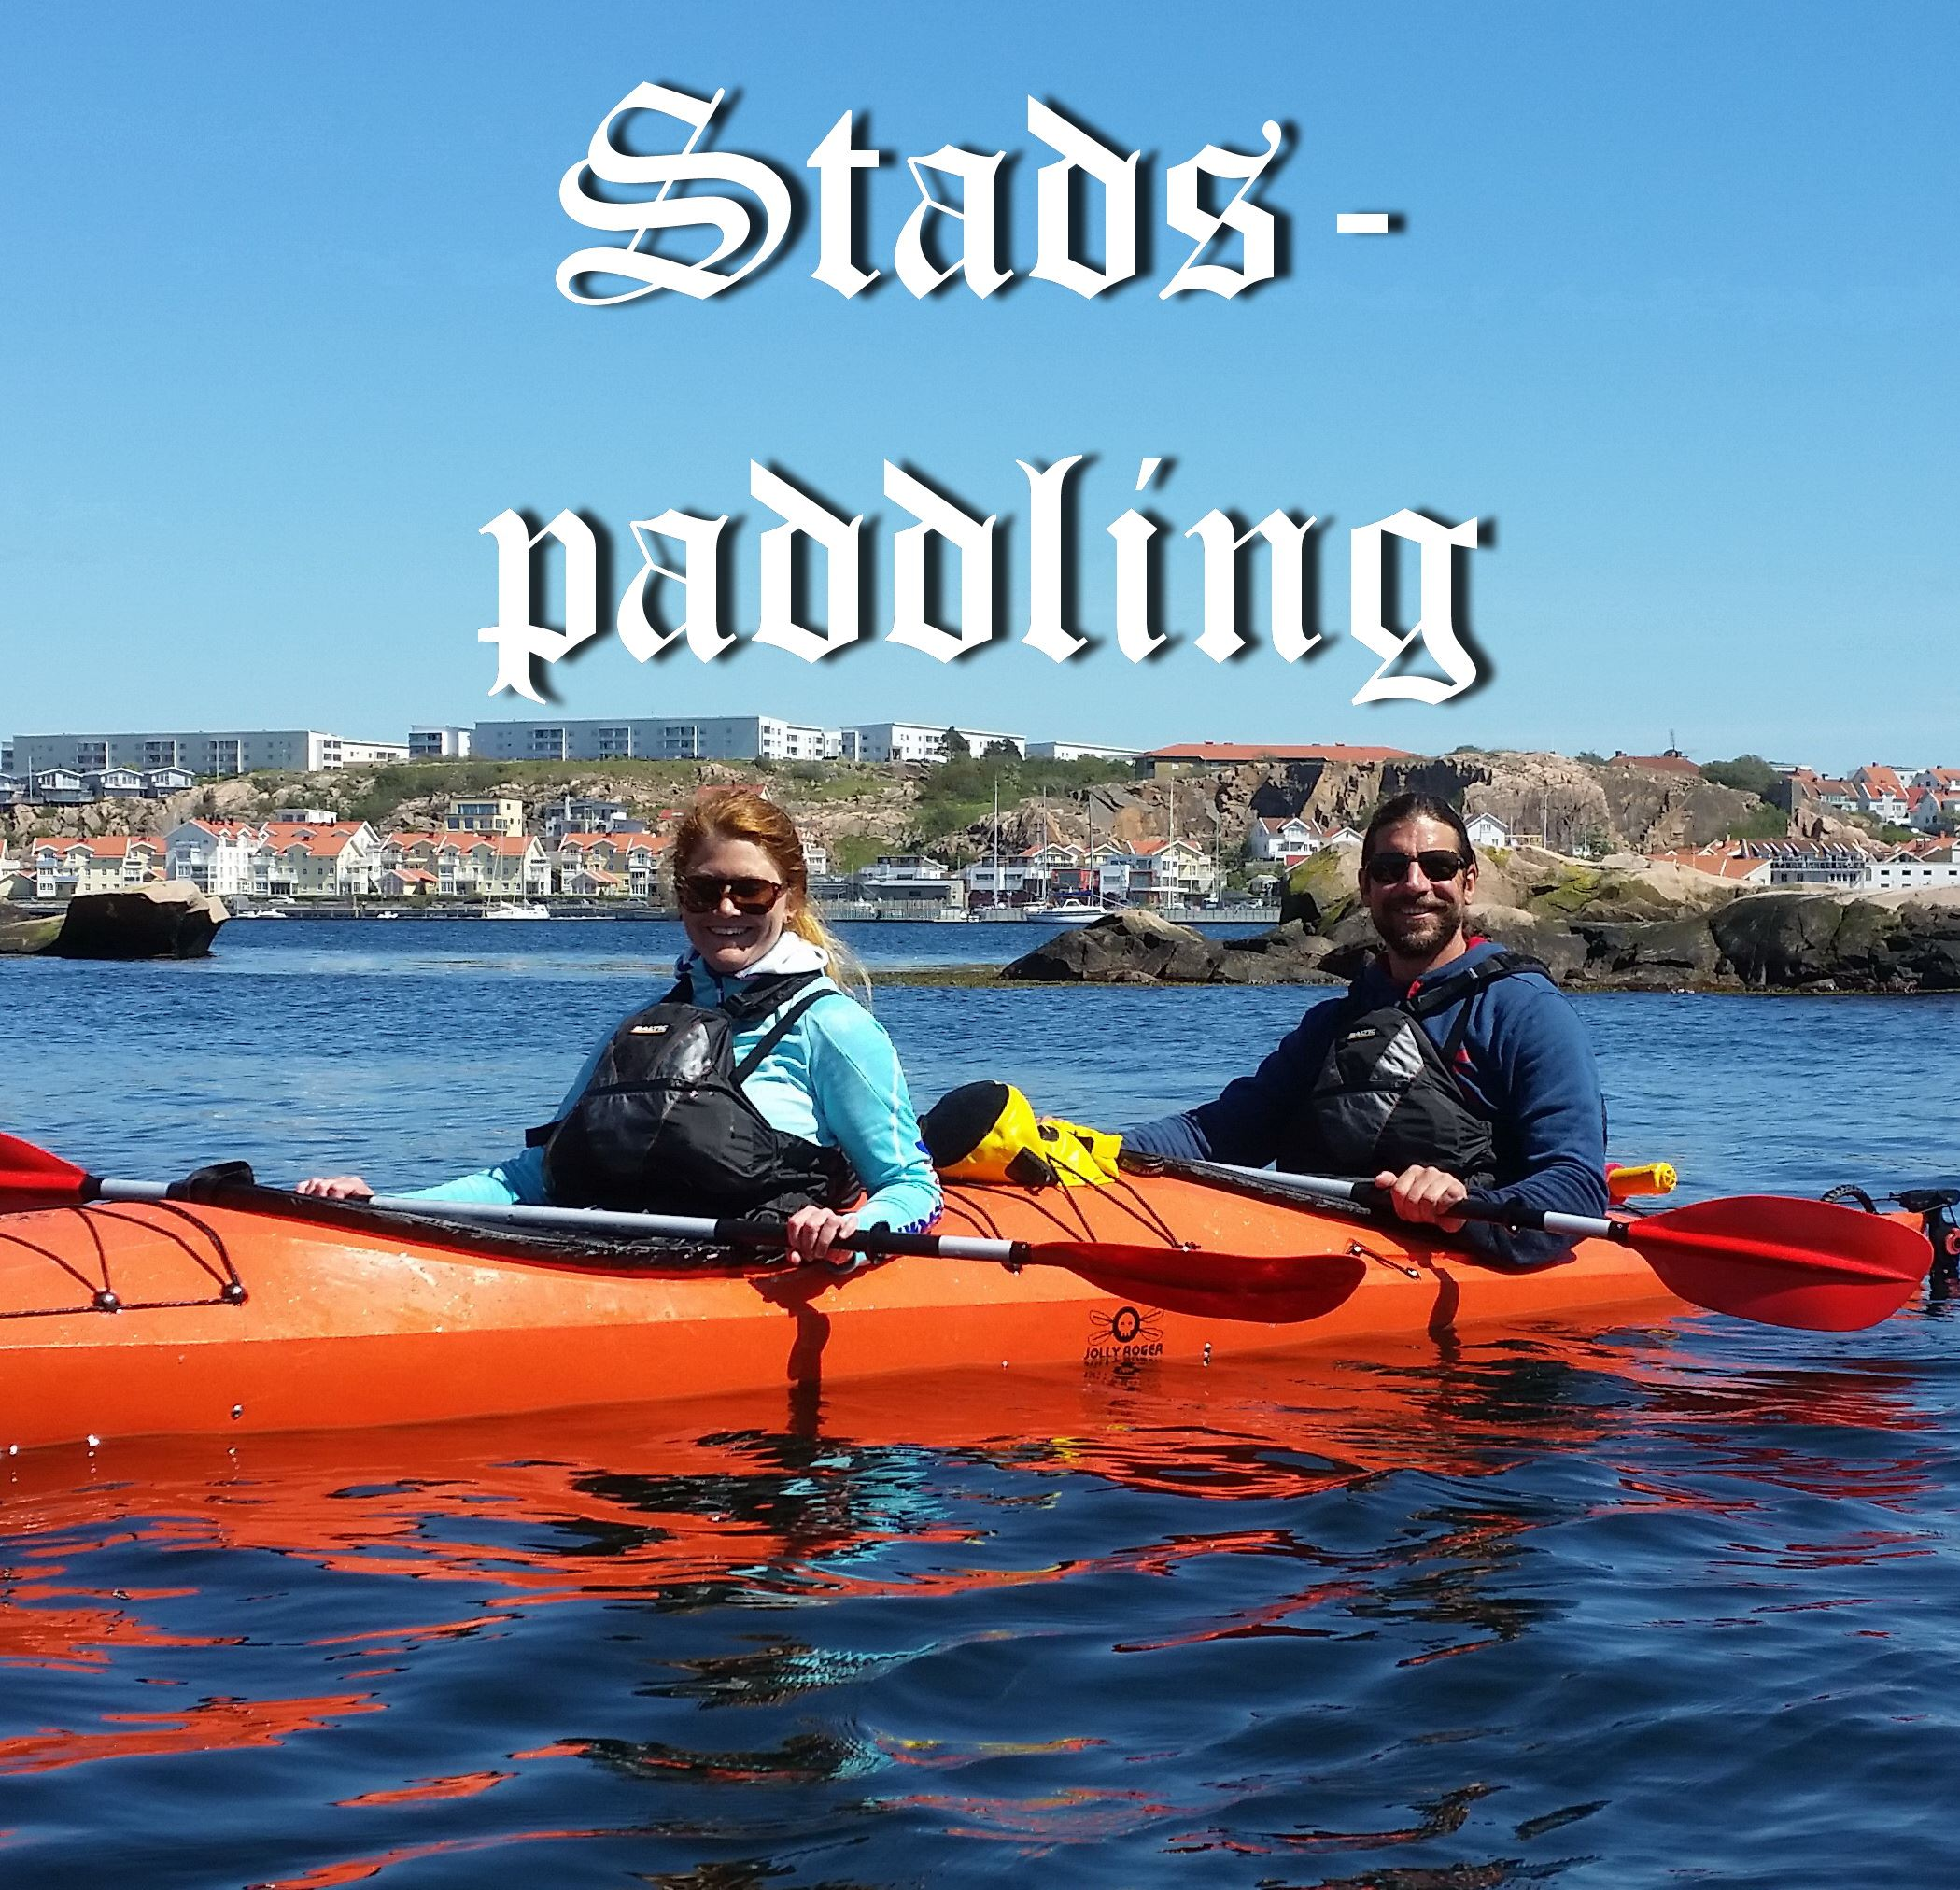 PADDLING - Kayak tours with guide